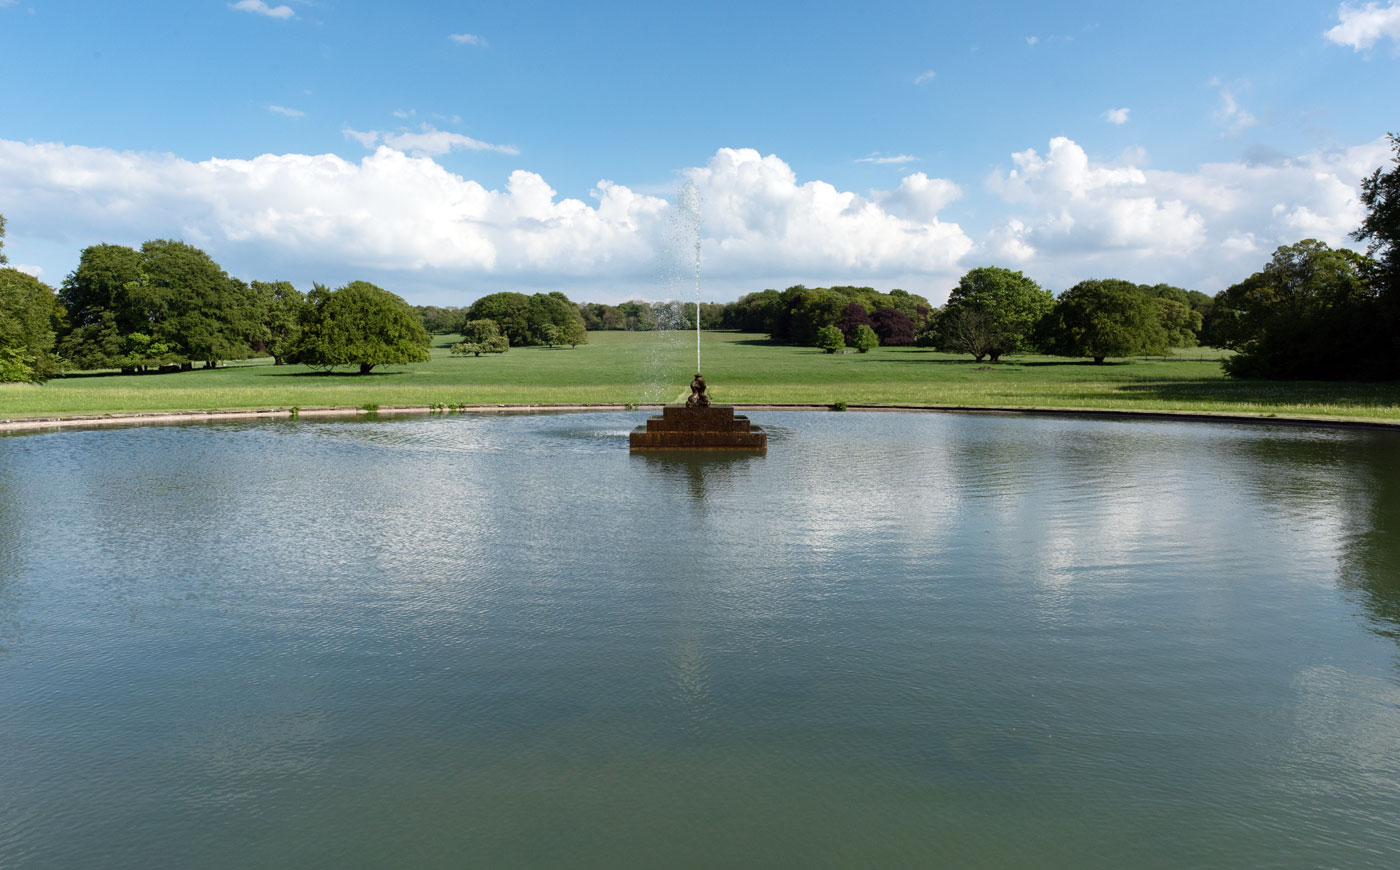 The lake at Sledmere House, East Yorkshire